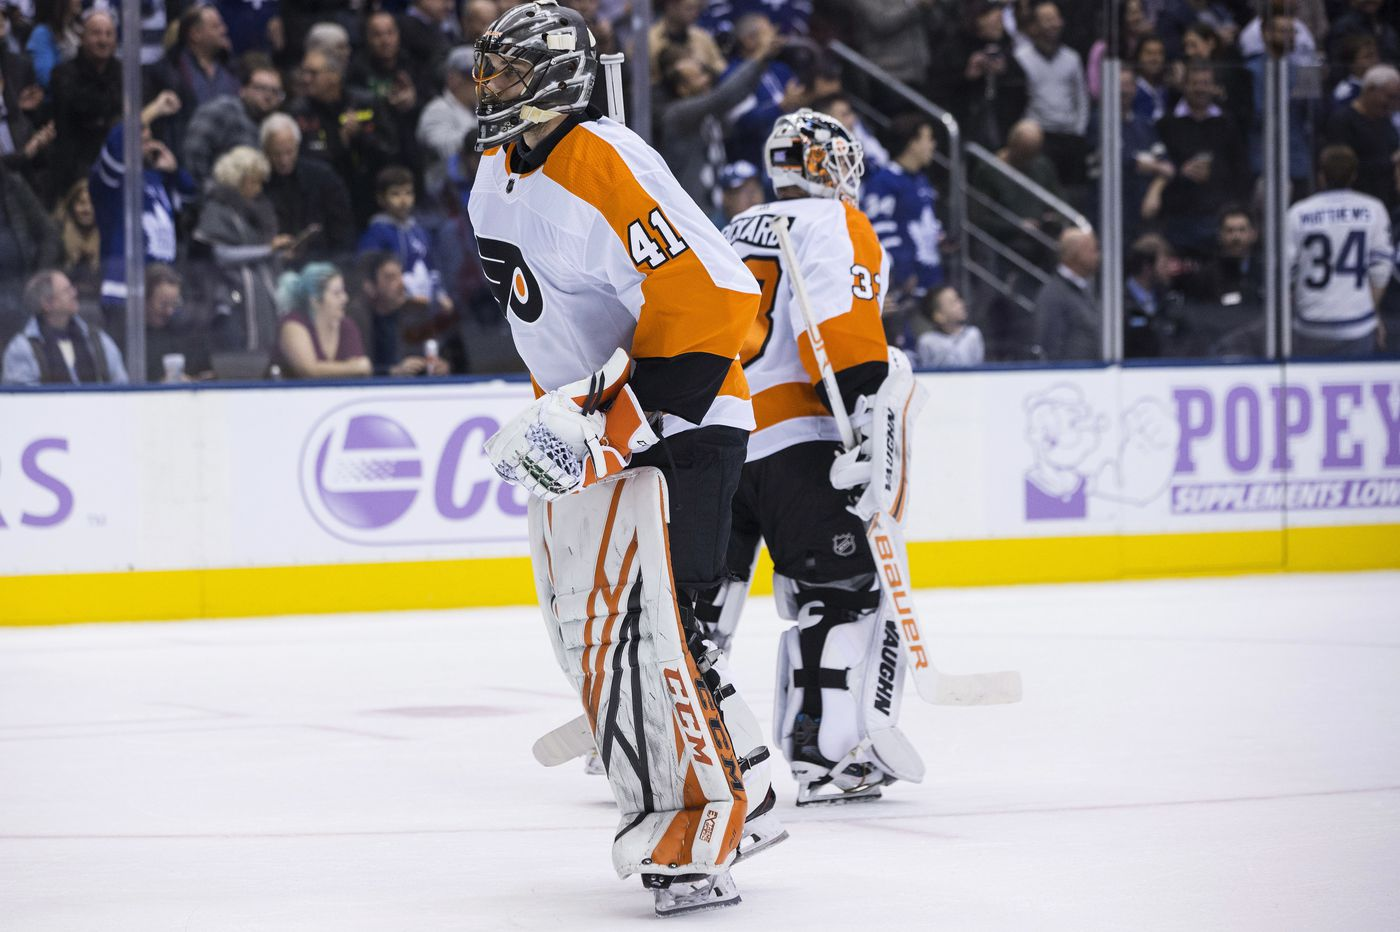 Flyers get blown out by Maple Leafs in James van Riemsdyk's return; changes coming?